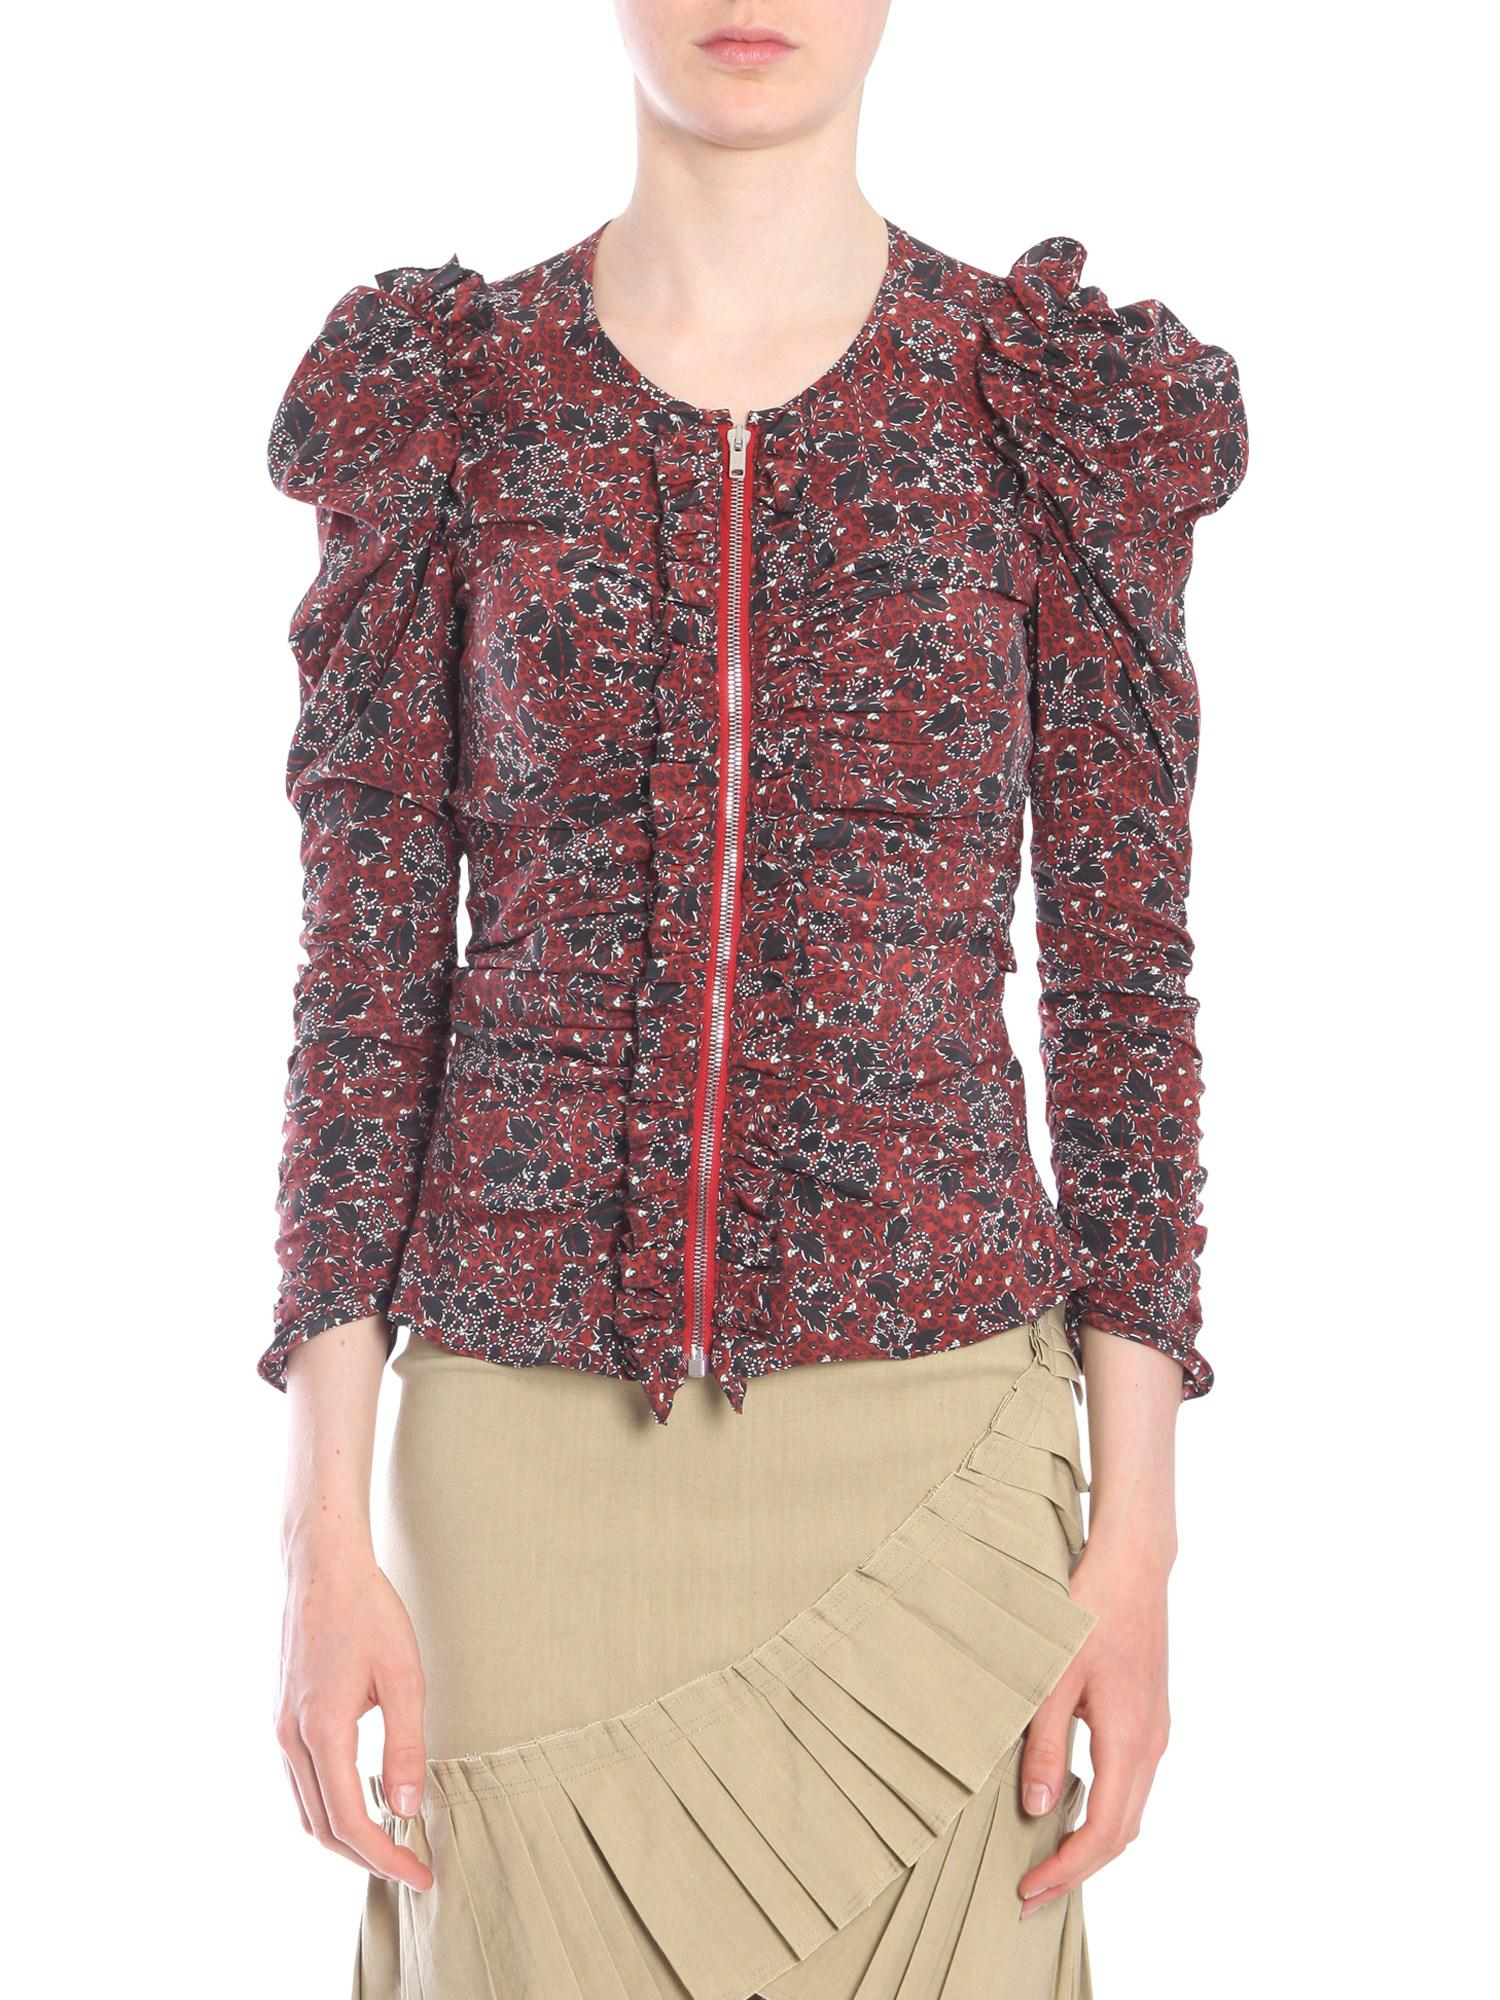 sneakers for cheap 7cd20 2f8cd isabel-marant-BORDEAUX-Printed-bali-Stretch-Silk-Shirt-With-Zip.jpeg